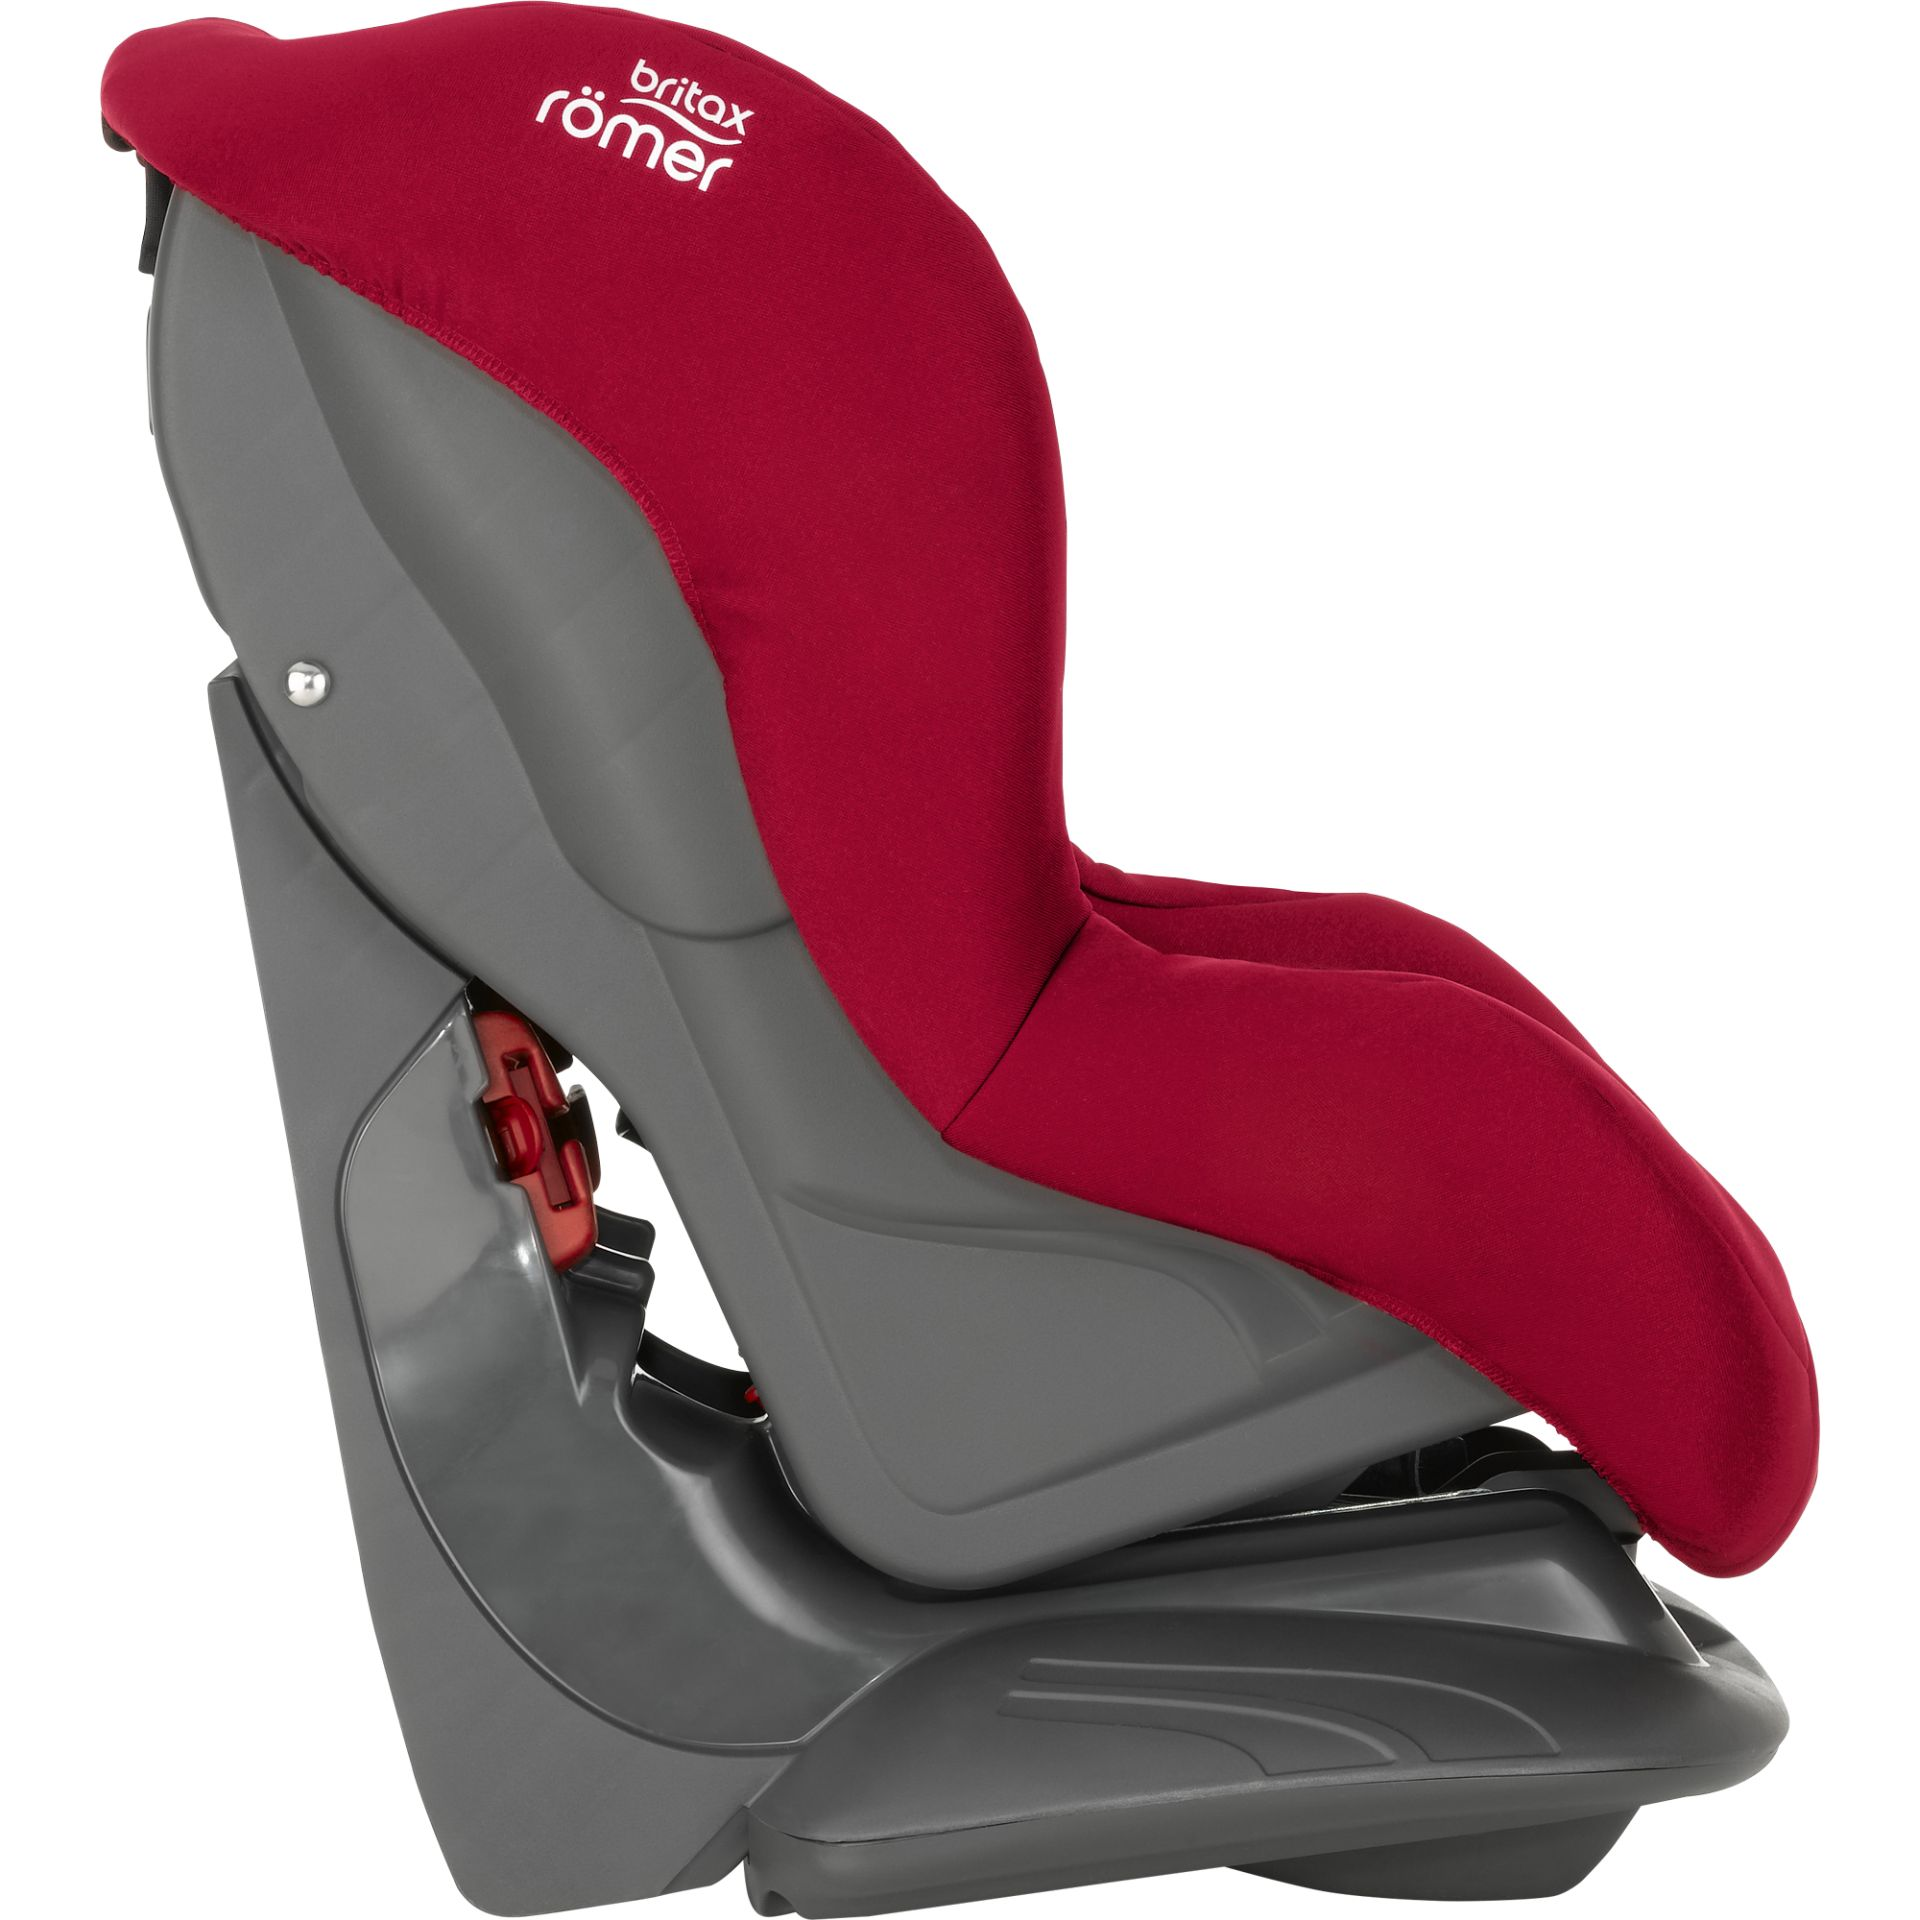 britax r mer car seat eclipse 2018 flame red buy at kidsroom car seats. Black Bedroom Furniture Sets. Home Design Ideas